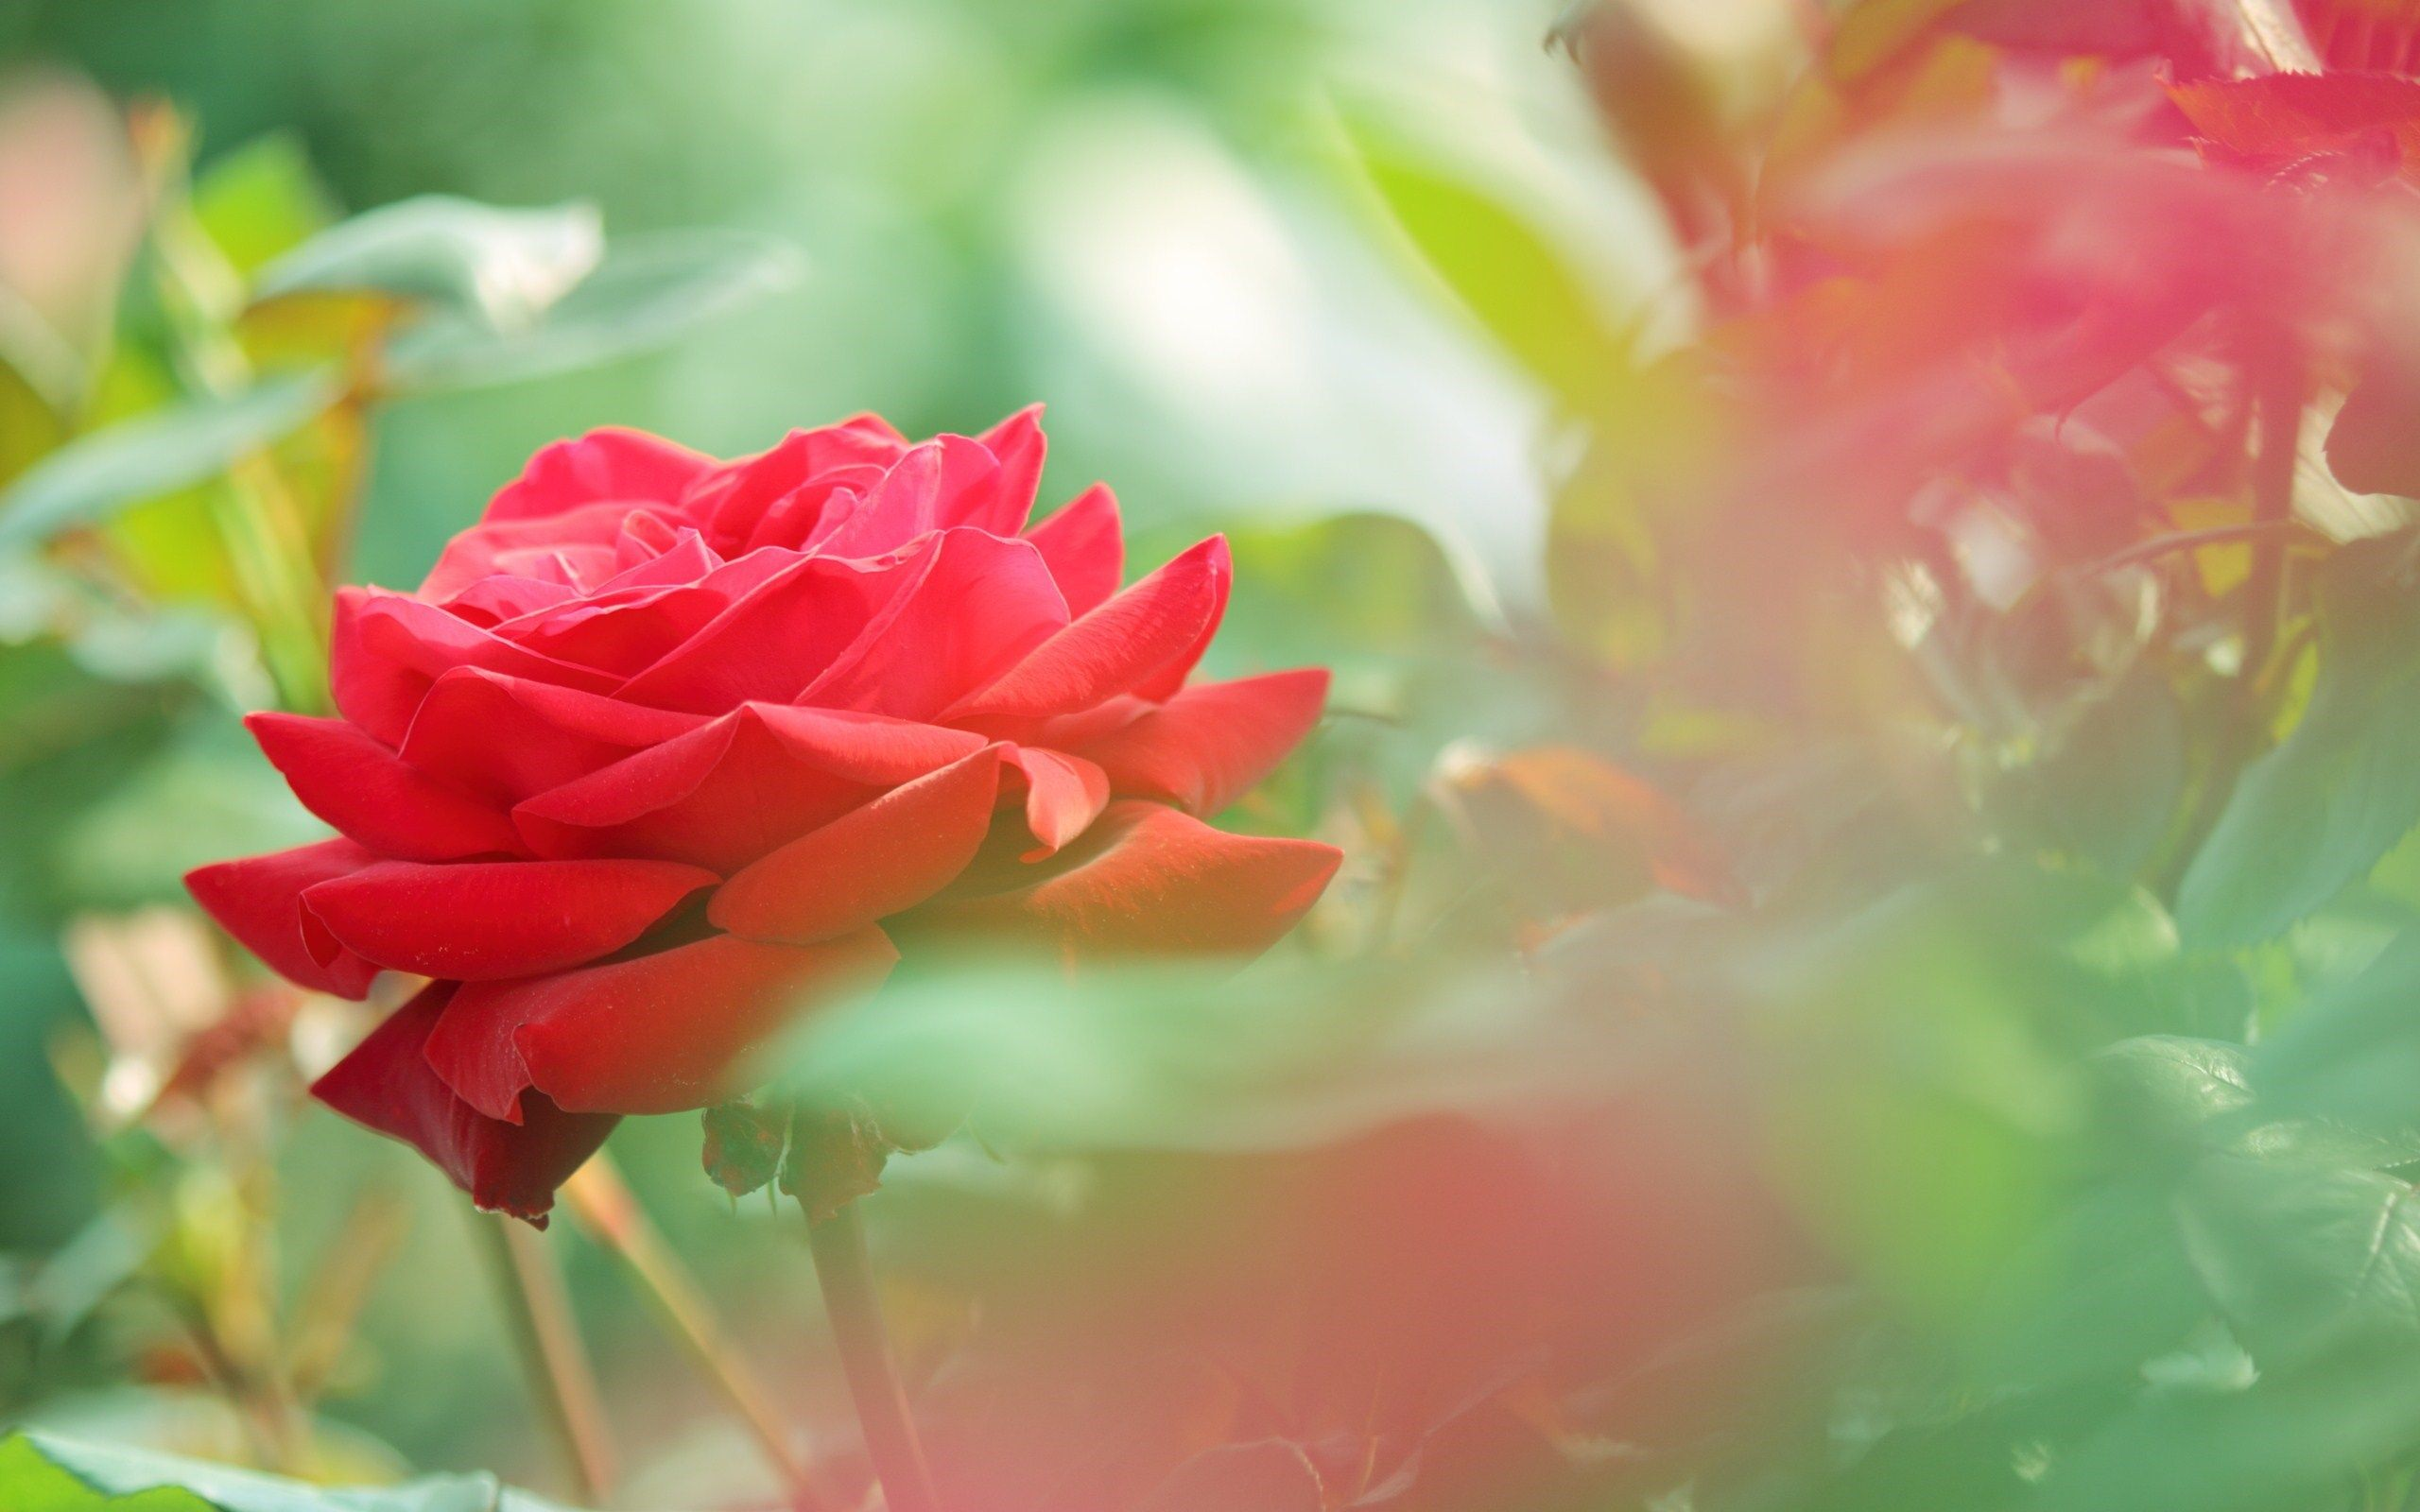 beautiful red rose flower photo hd wallpaper | HD Wallpapers